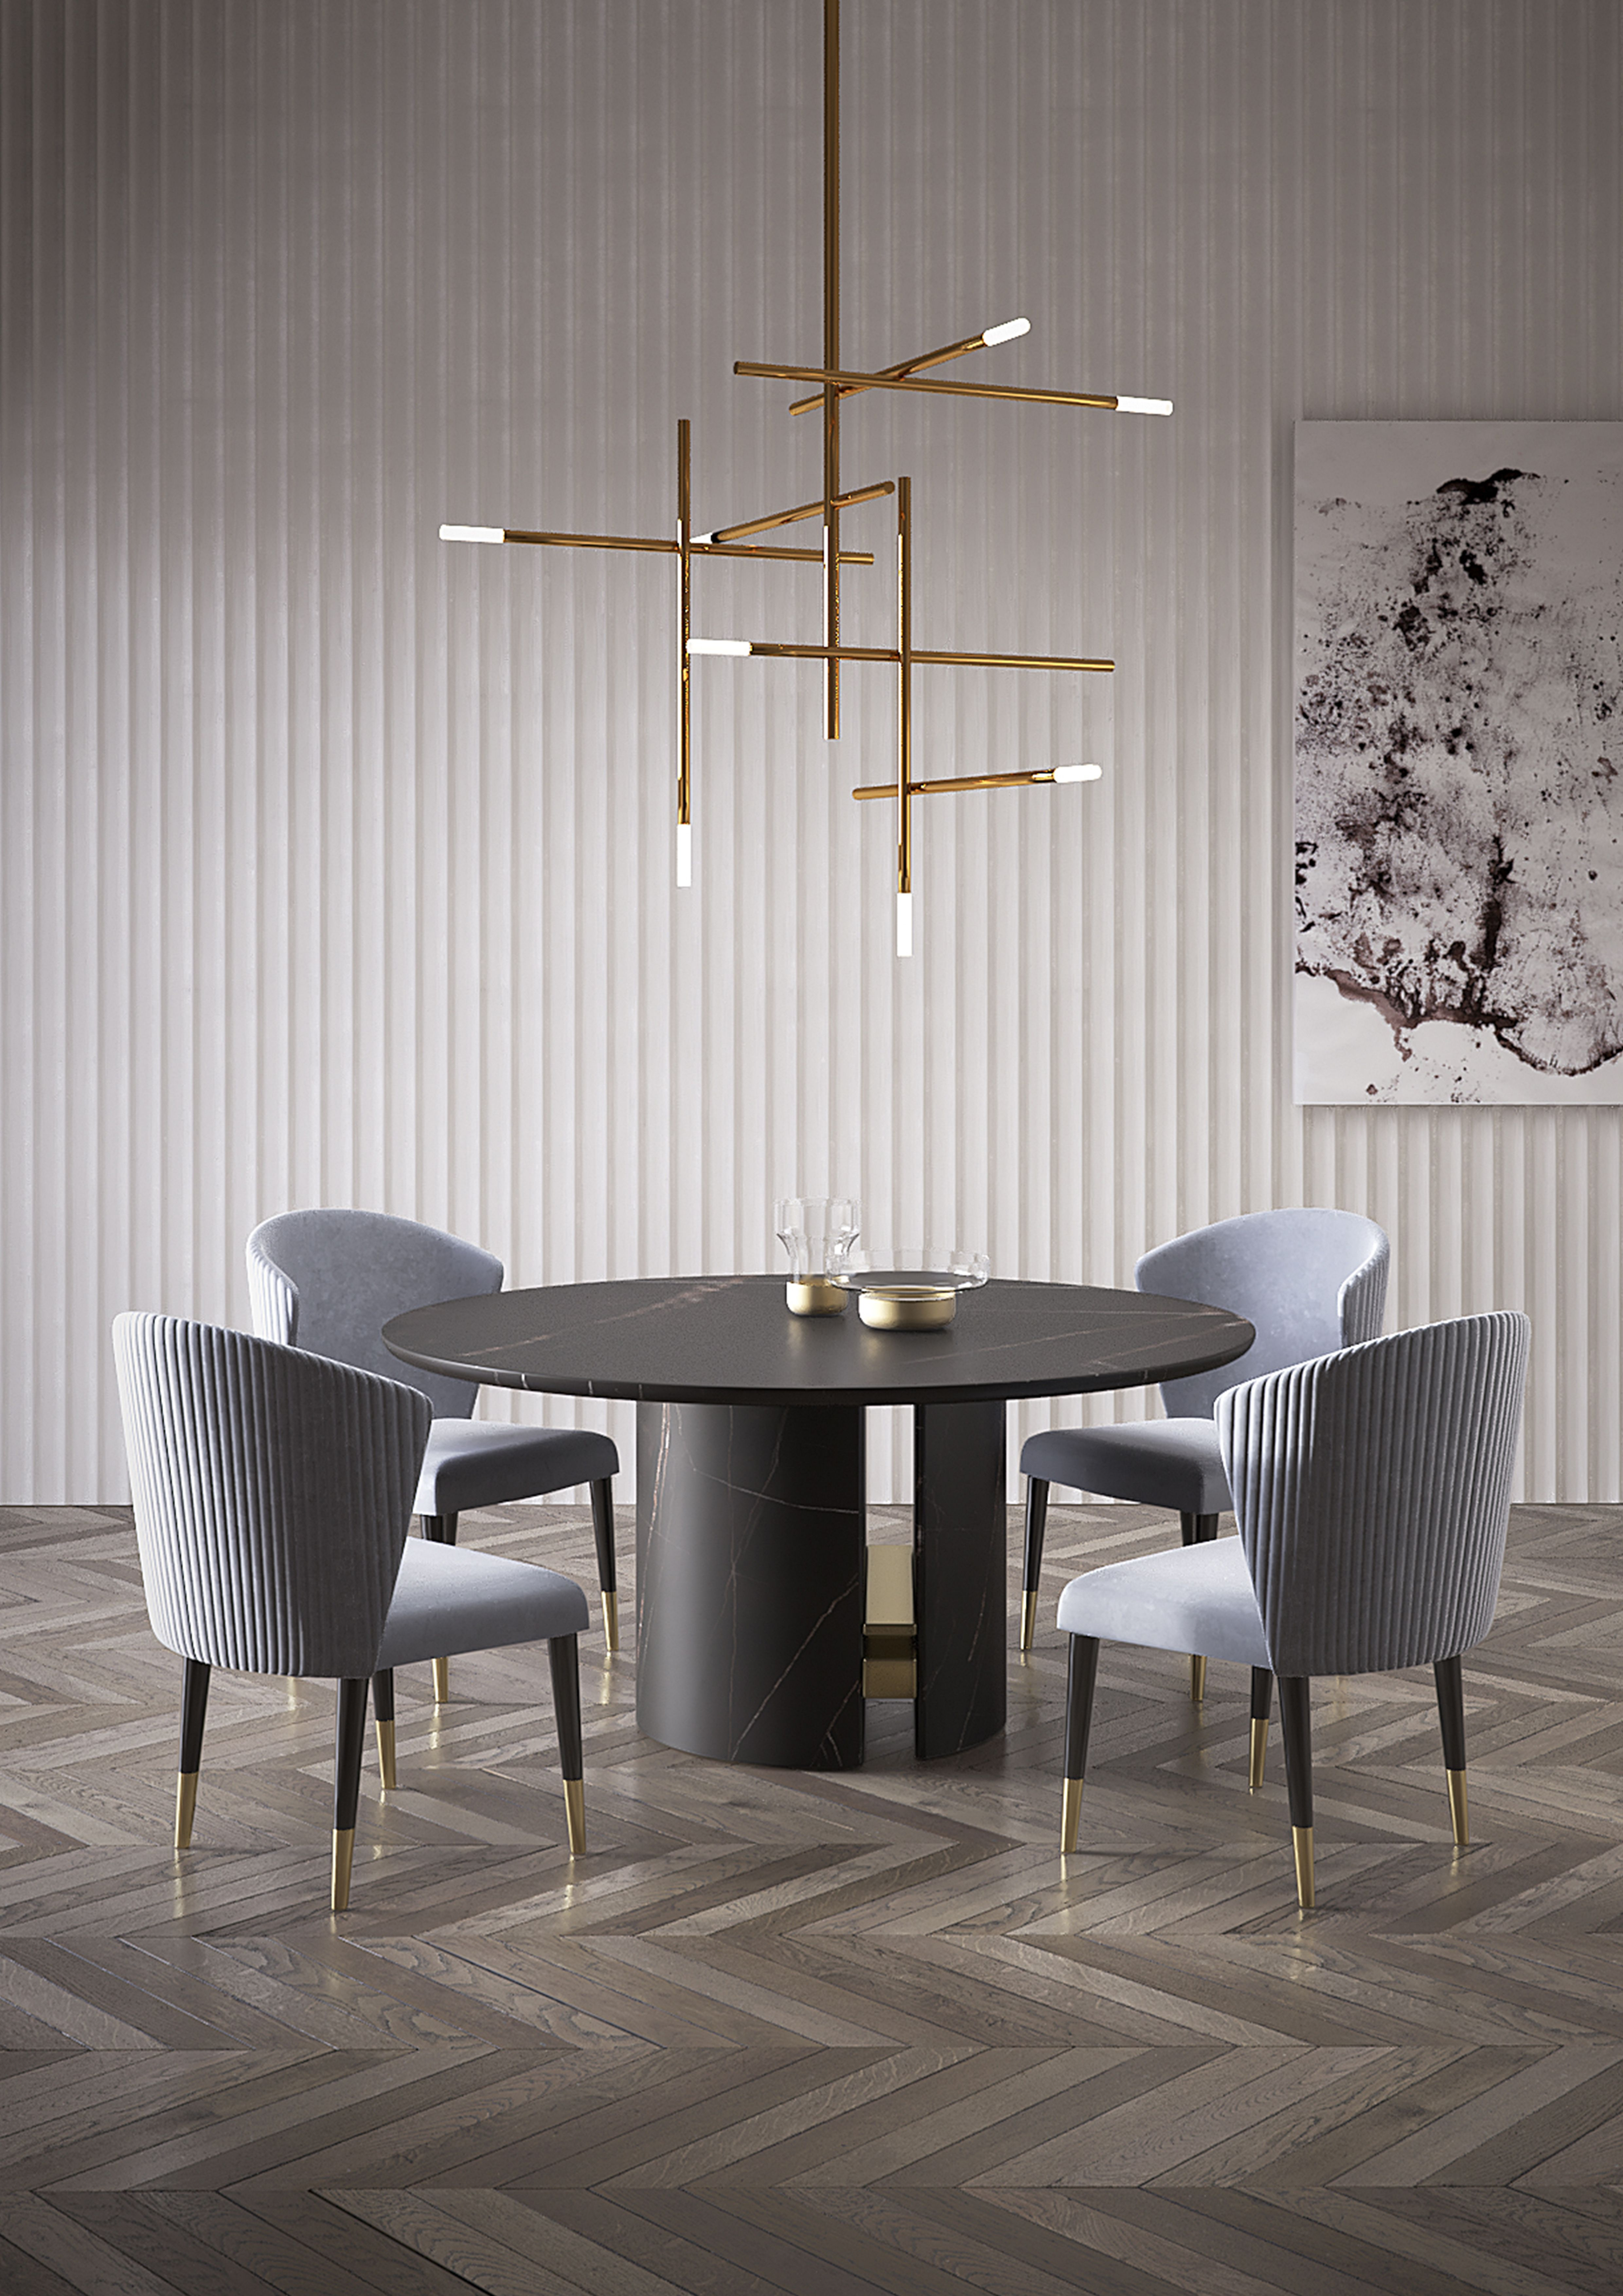 Round Dining Table Ercole By Capital Collection Design Boattomartinostudio Luxury Dining Room Dining Room Design Modern Dining Room